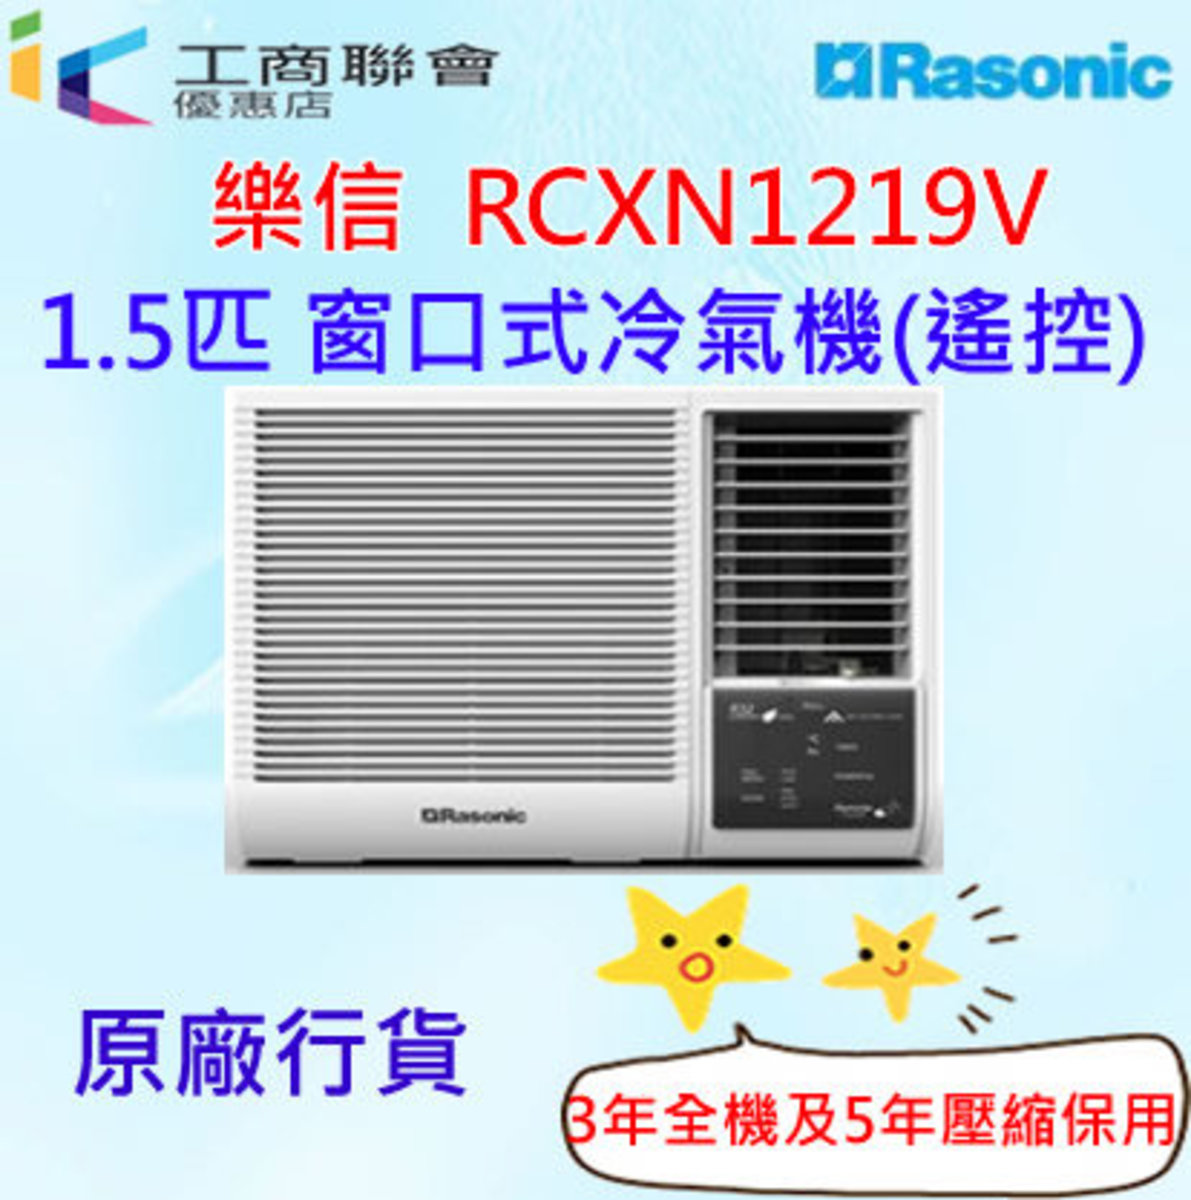 RCXN1219V 1.5HP Window Air Conditioner (Remote Control) (Free Removal Service)